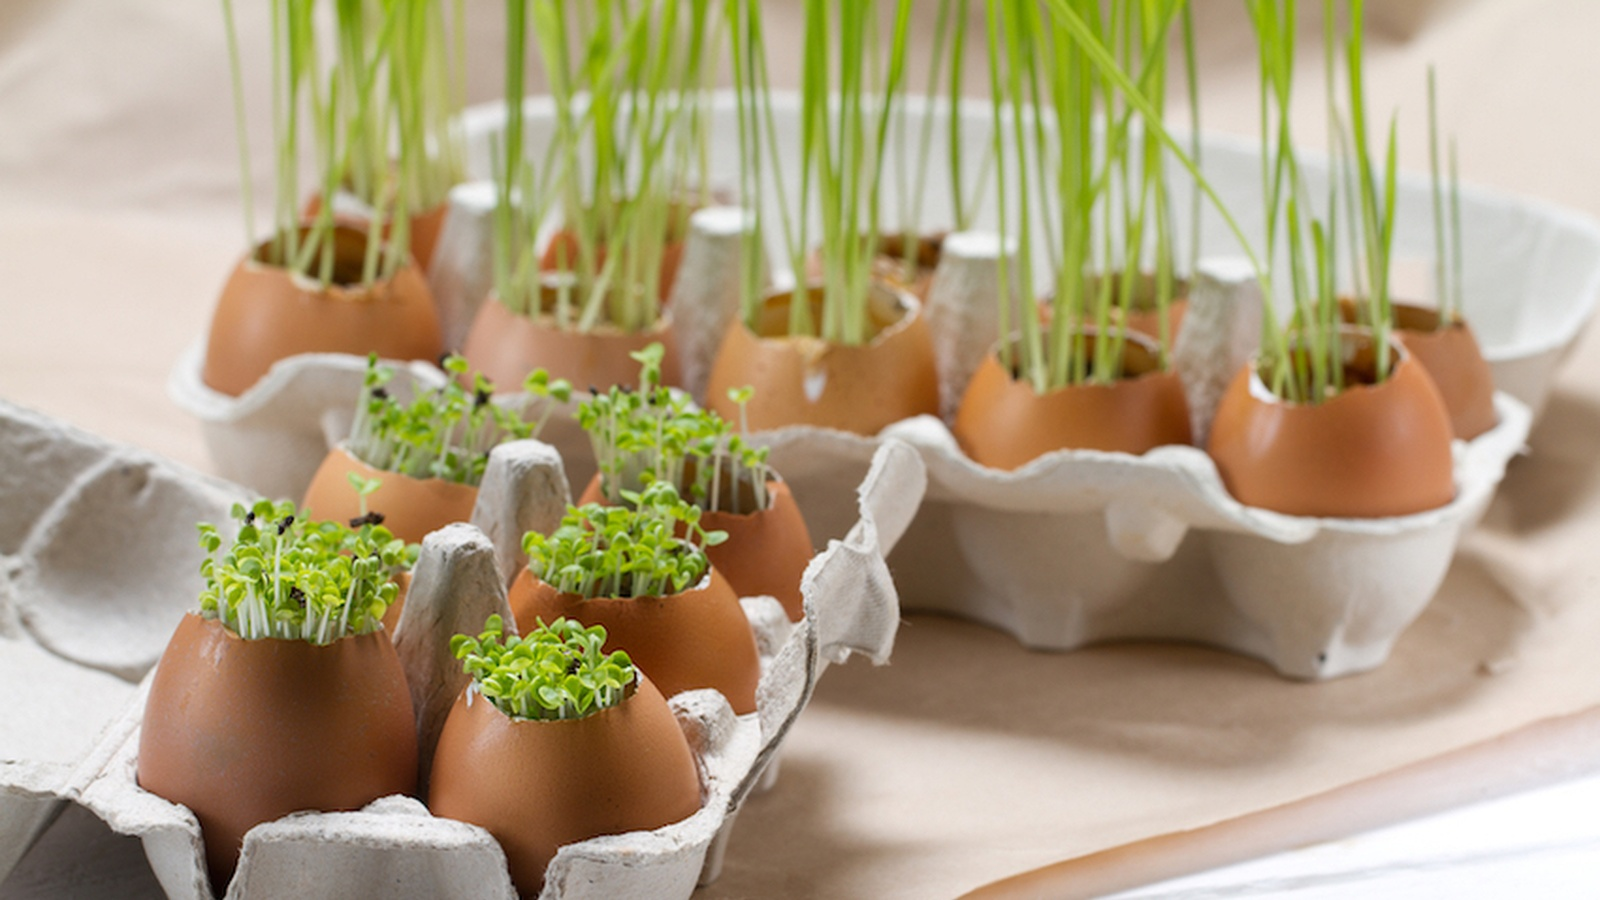 How To Grow Your Own Herbs On Your Kitchen Counter